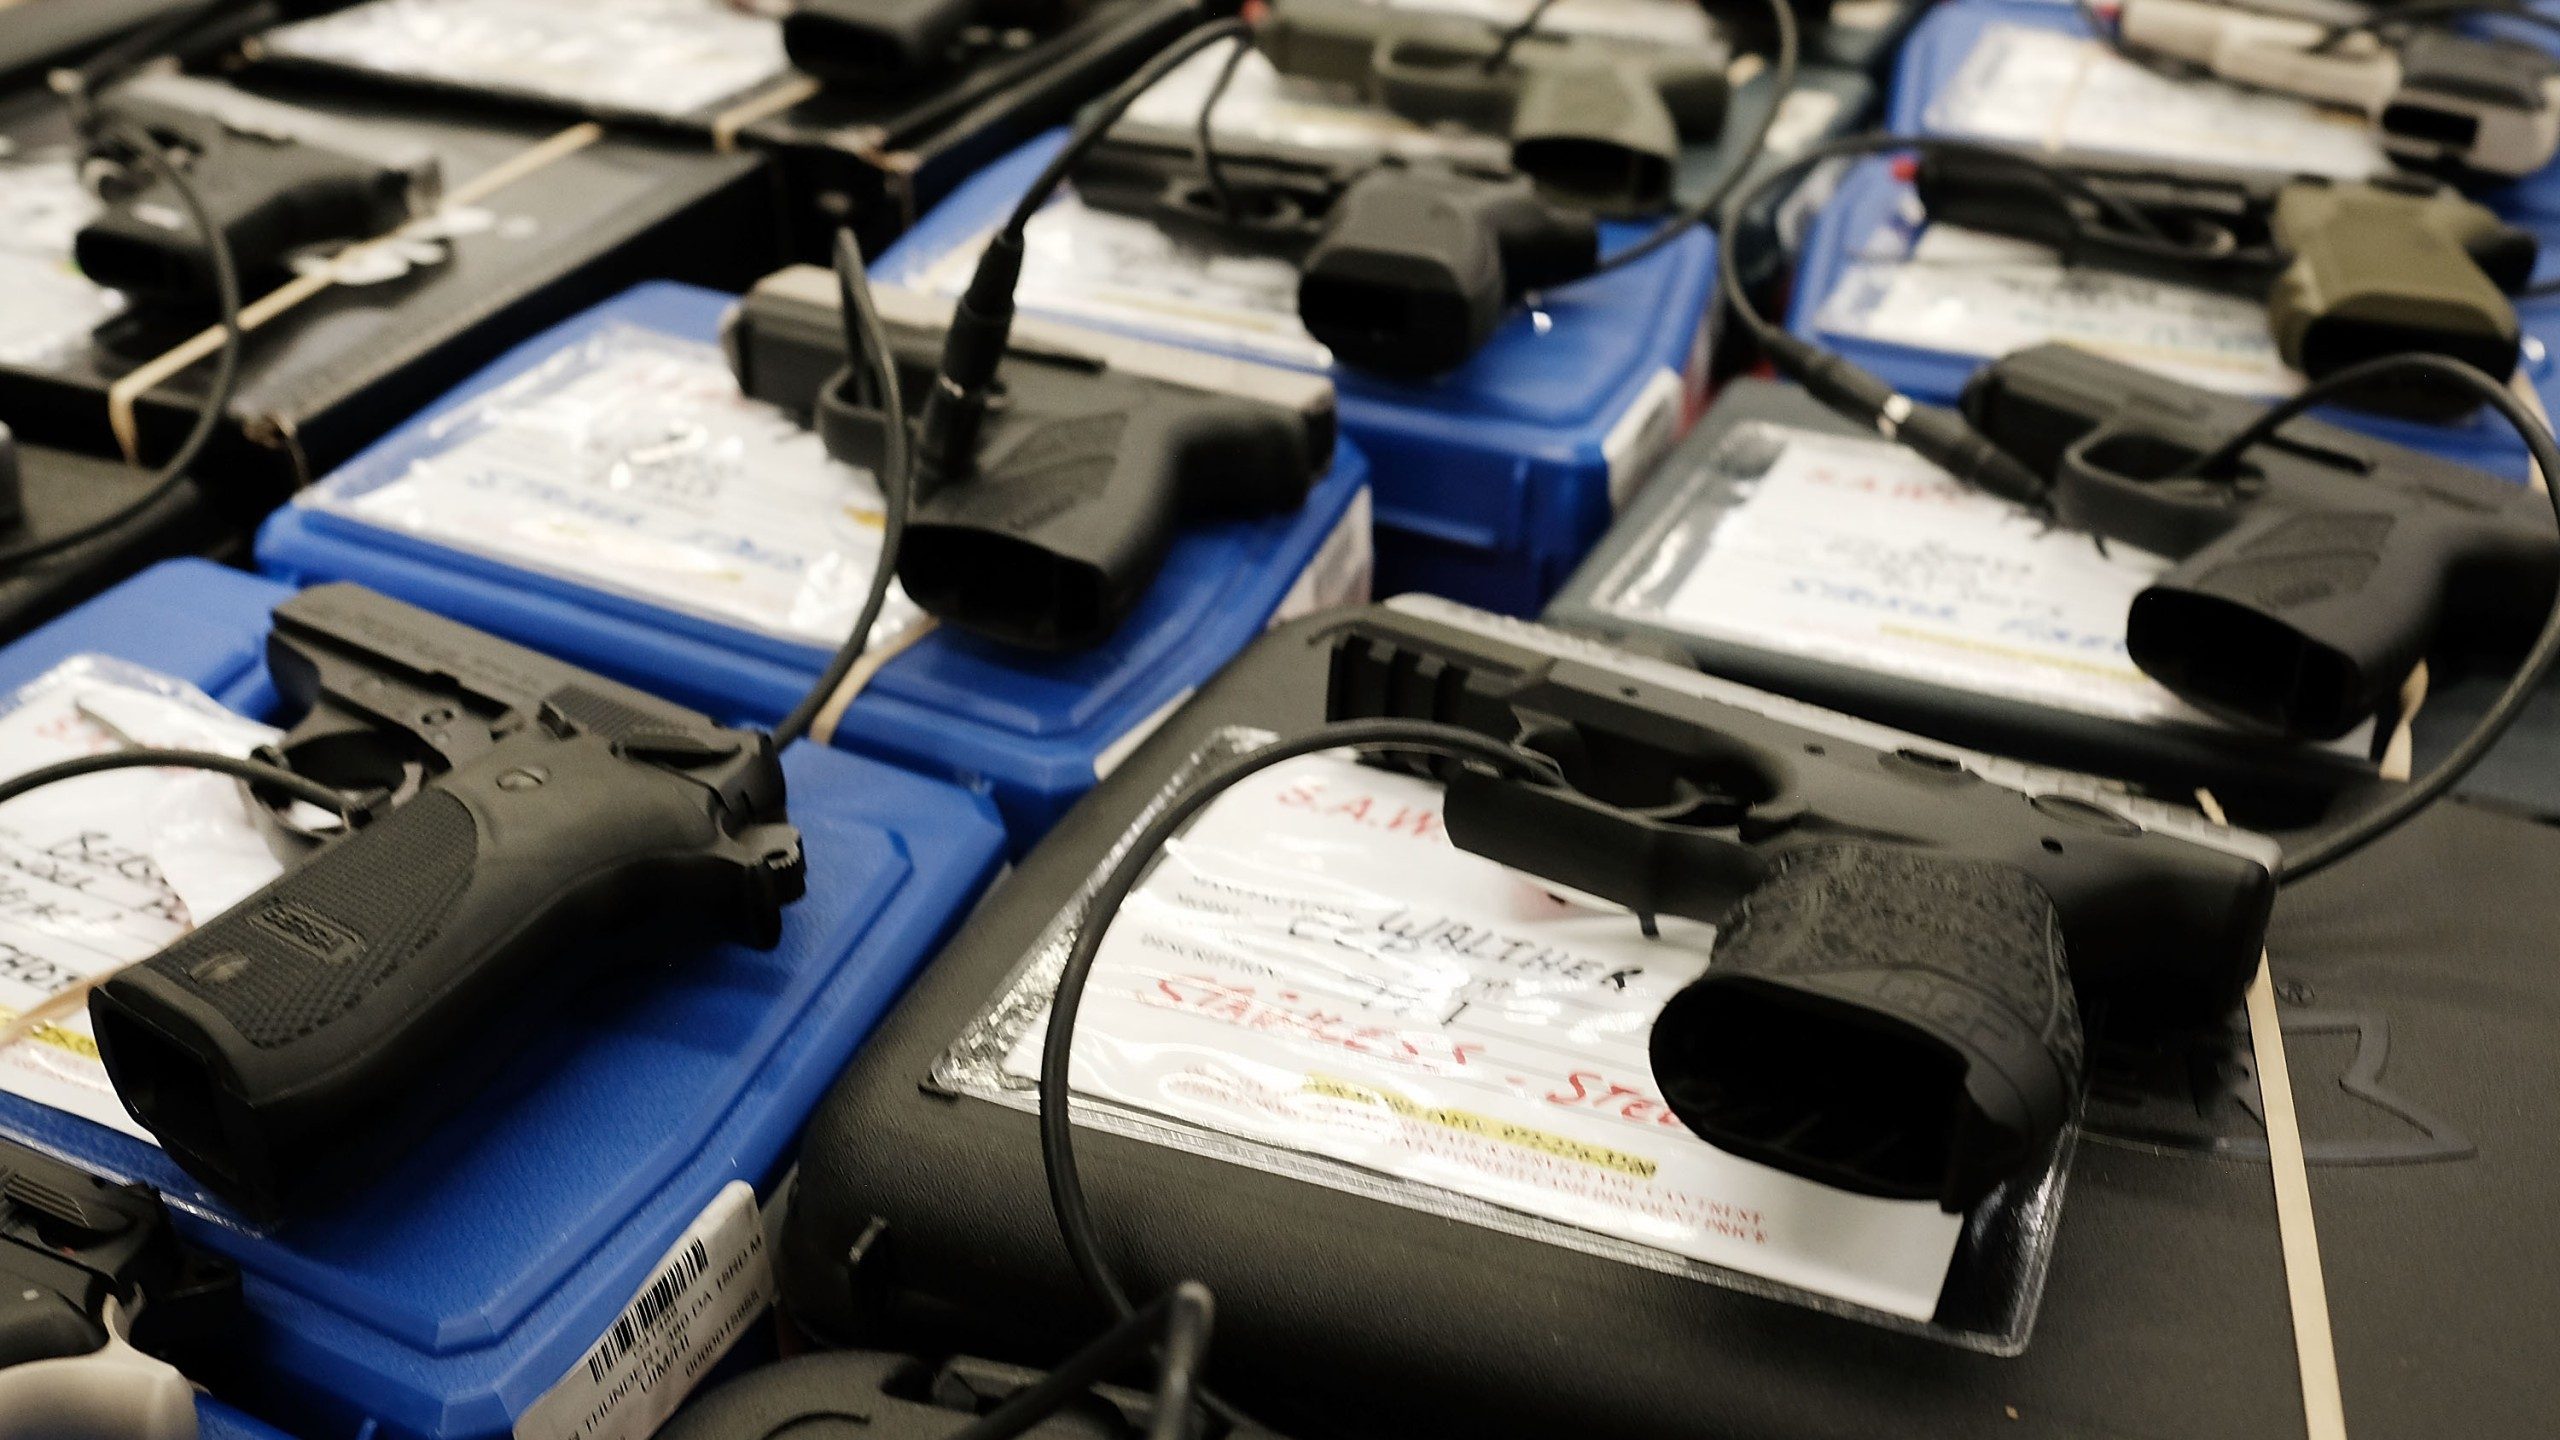 Guns sit for sale at a gun show where thousands of different weapons are displayed for sale on July 10, 2016 in Fort Worth, Texas. (Credit: Spencer Platt/Getty Images)